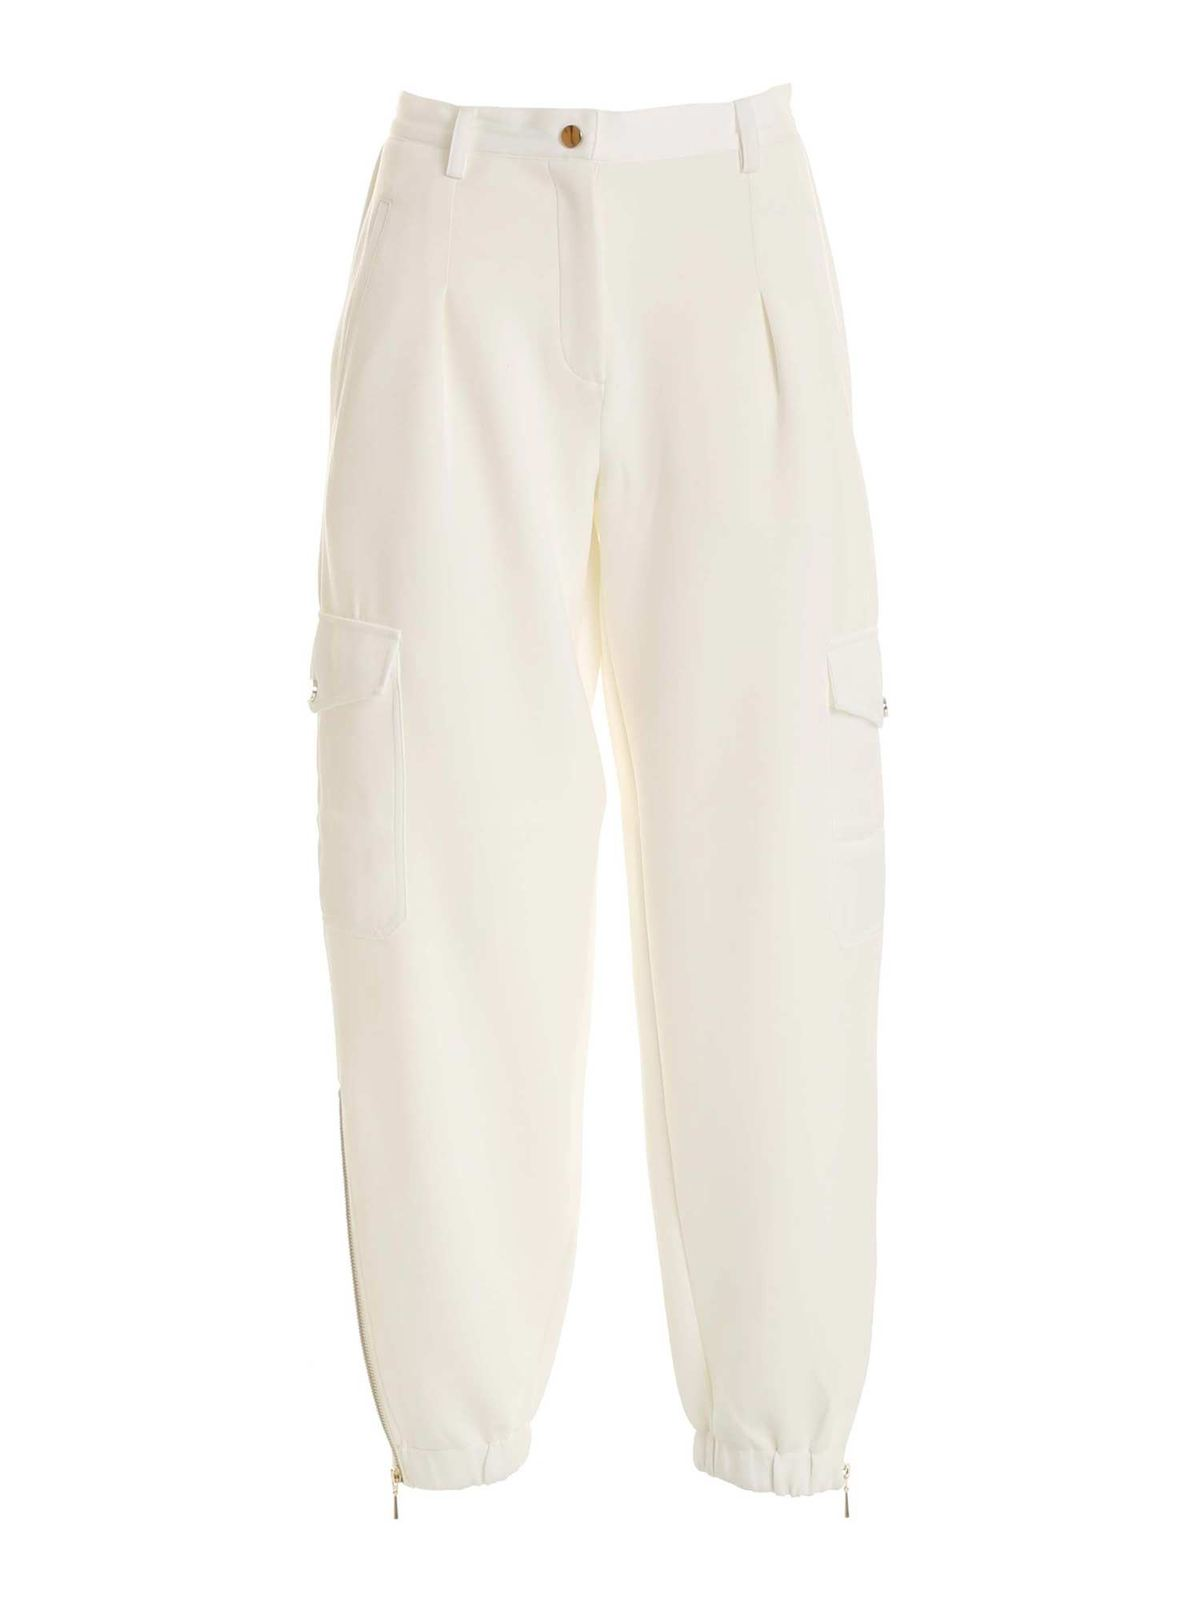 Twinset LOGO CHARM PANTS IN IVORY COLOR